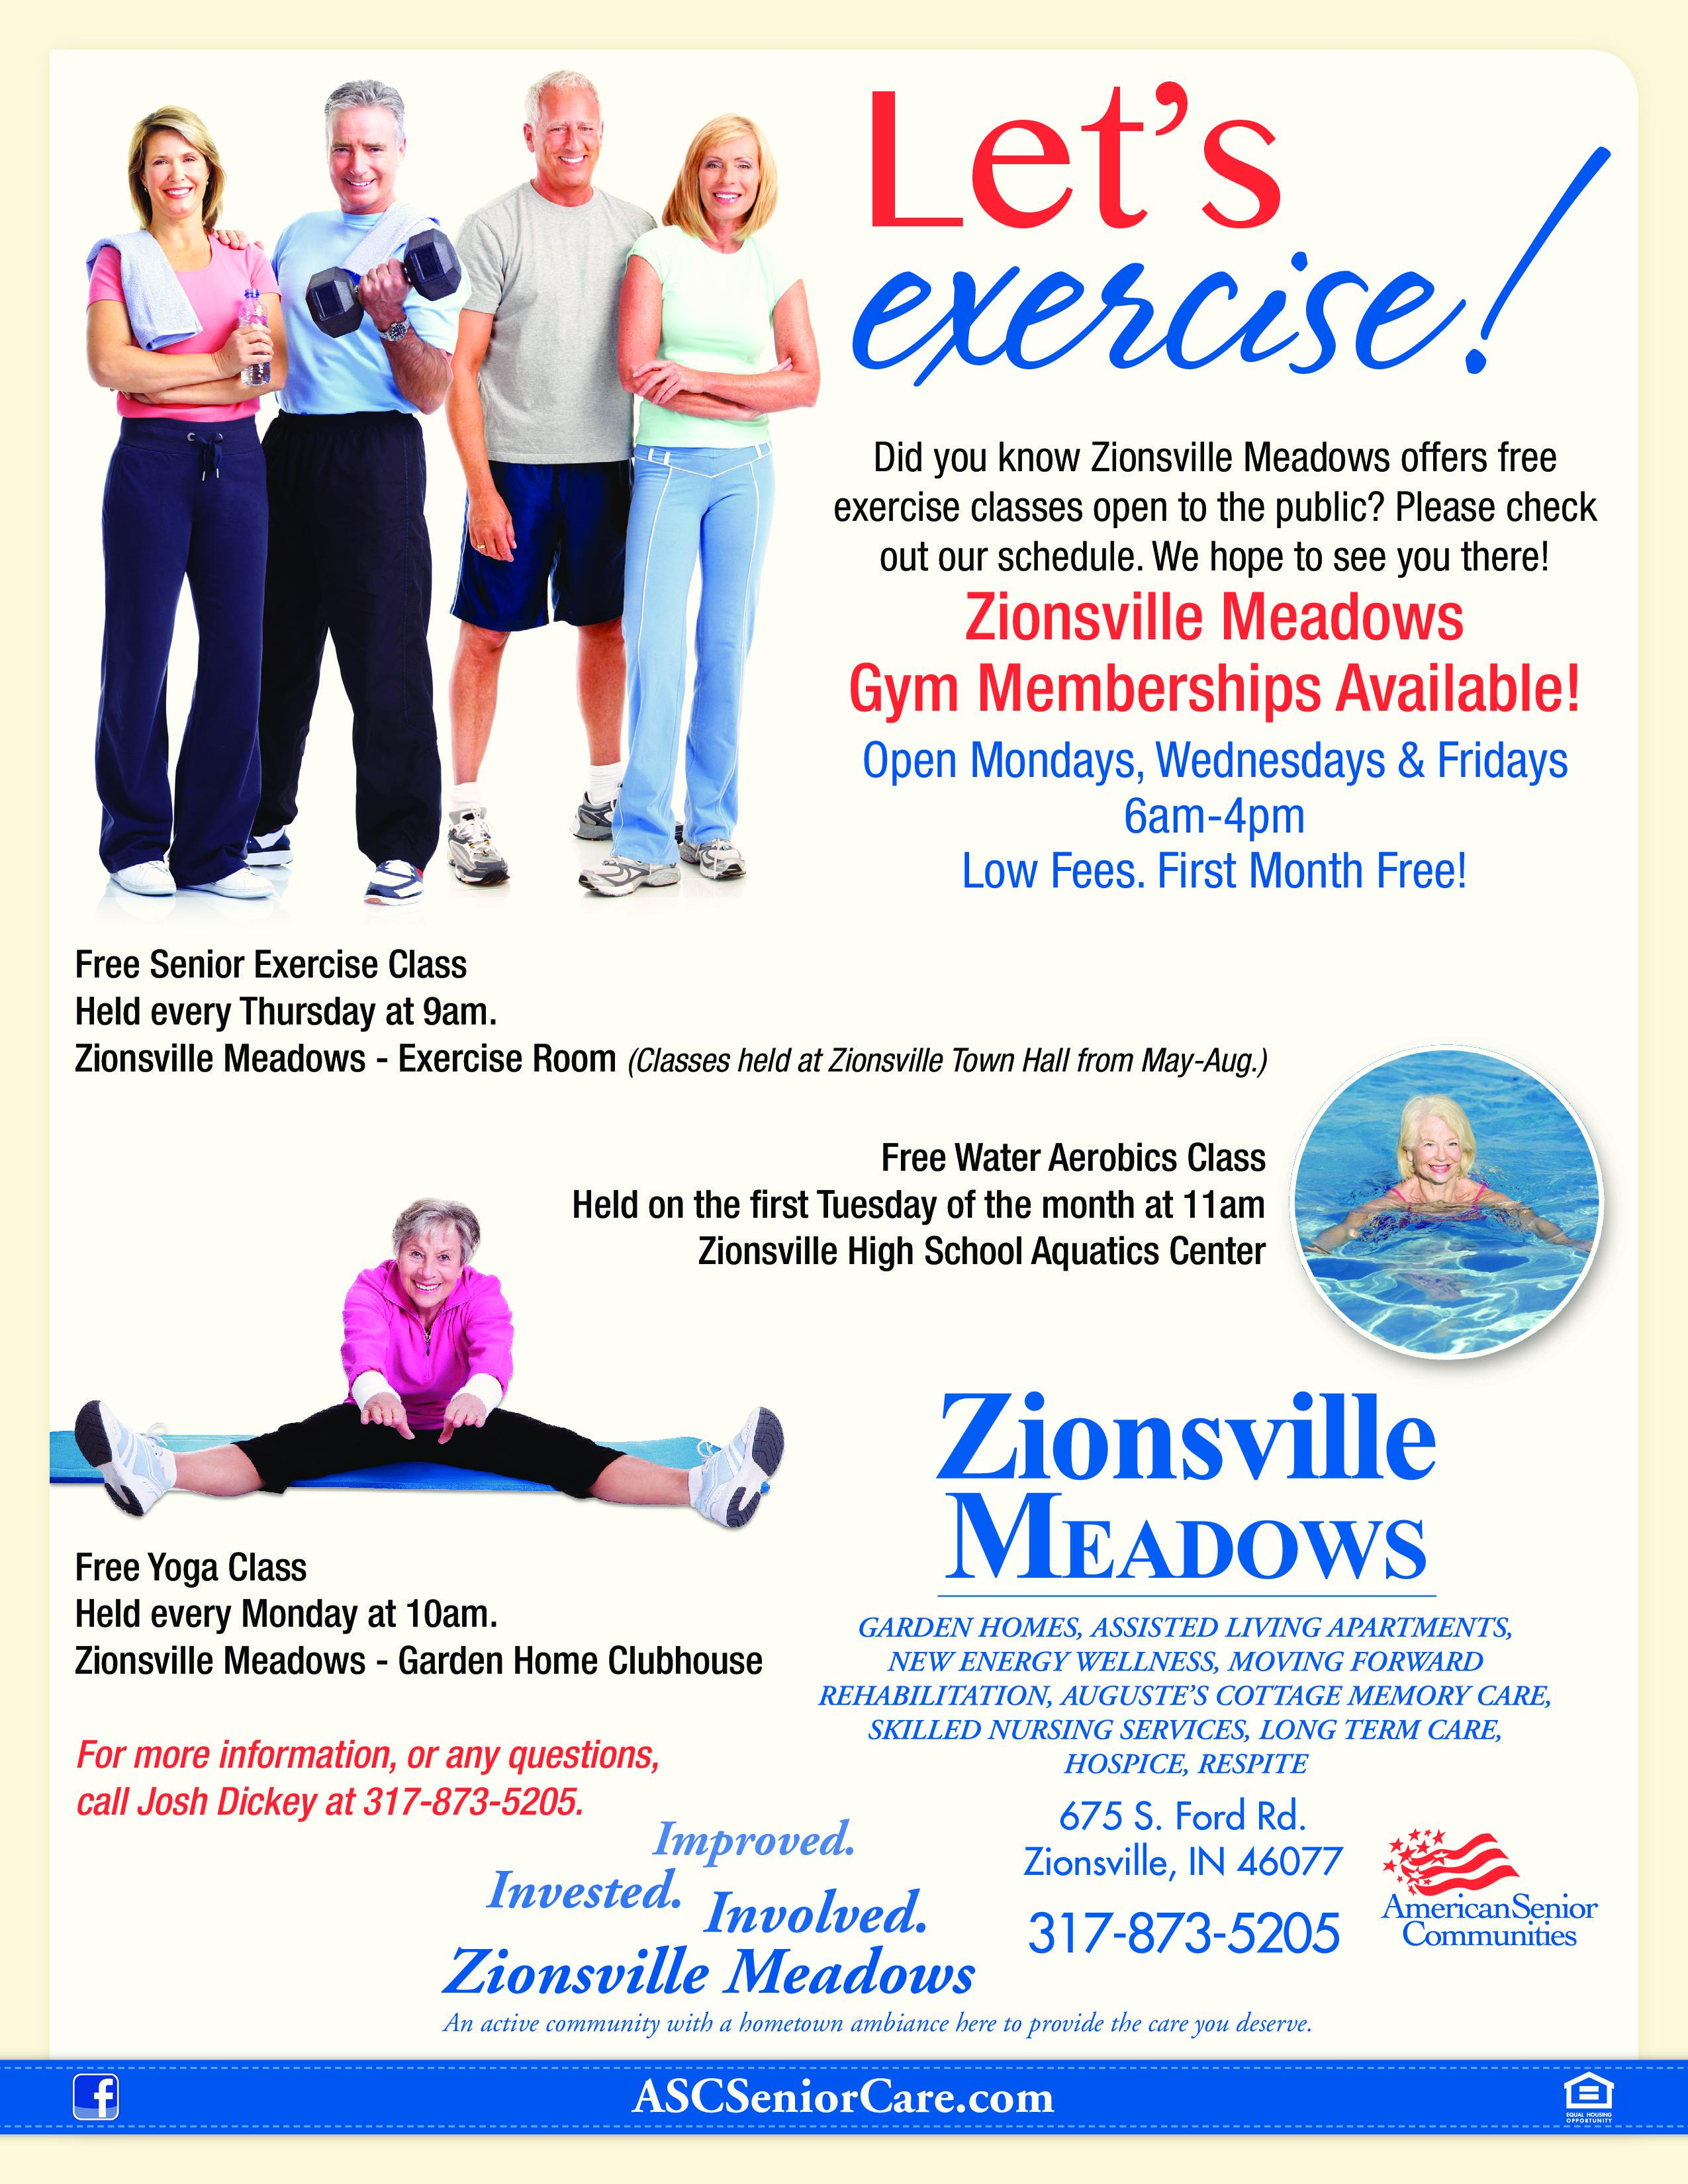 Free Senior Exercise Class at Zionsville Meadows